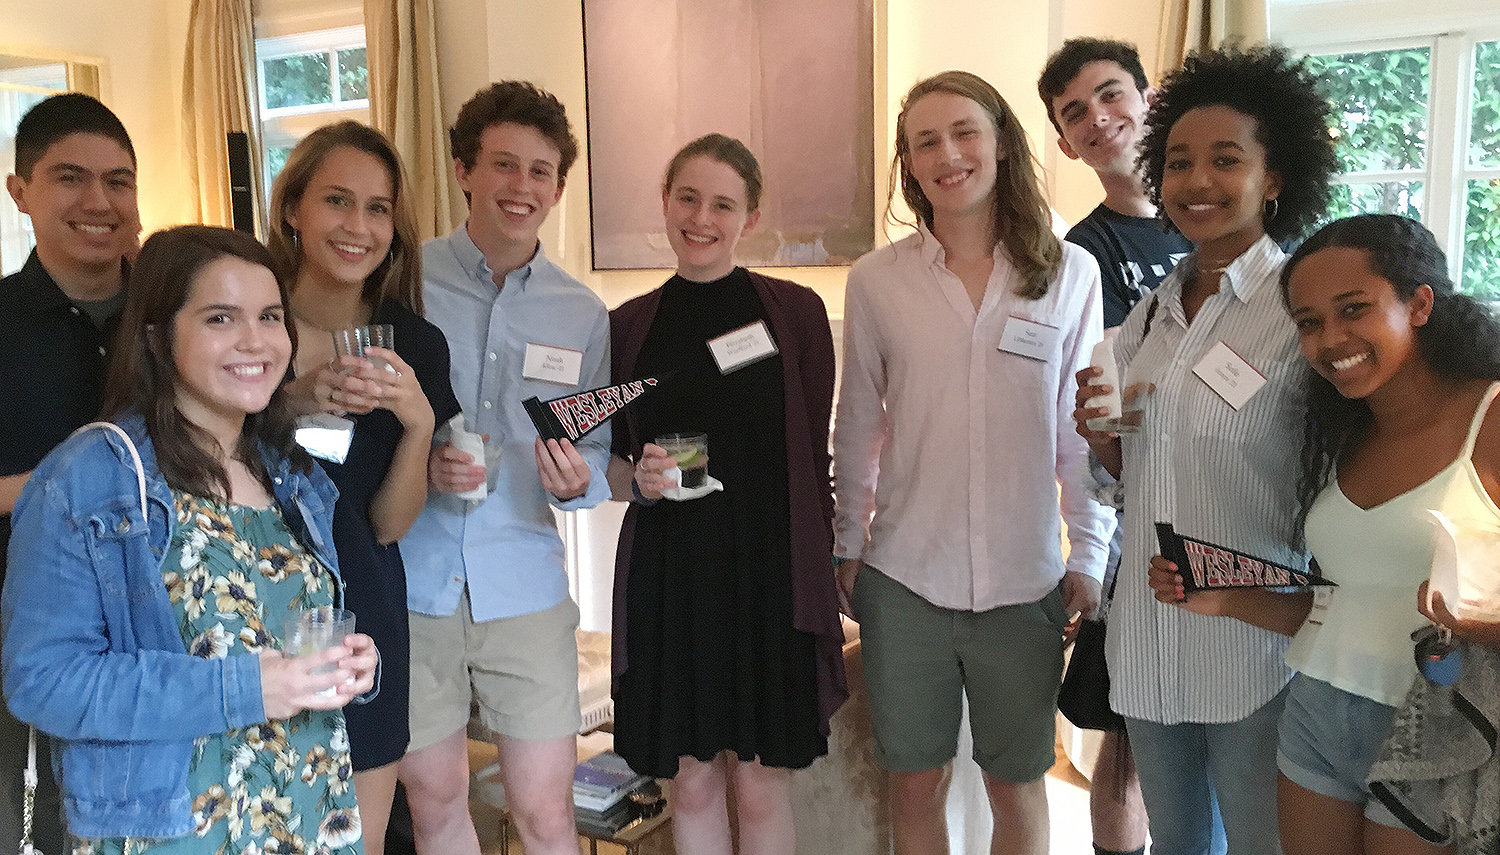 On July 17, a Summer Sendoff was held in Washington D.C. The event was hosted by Lisa Hook P'17, Peter Gillon P '17 and Nick Springsteen '17.